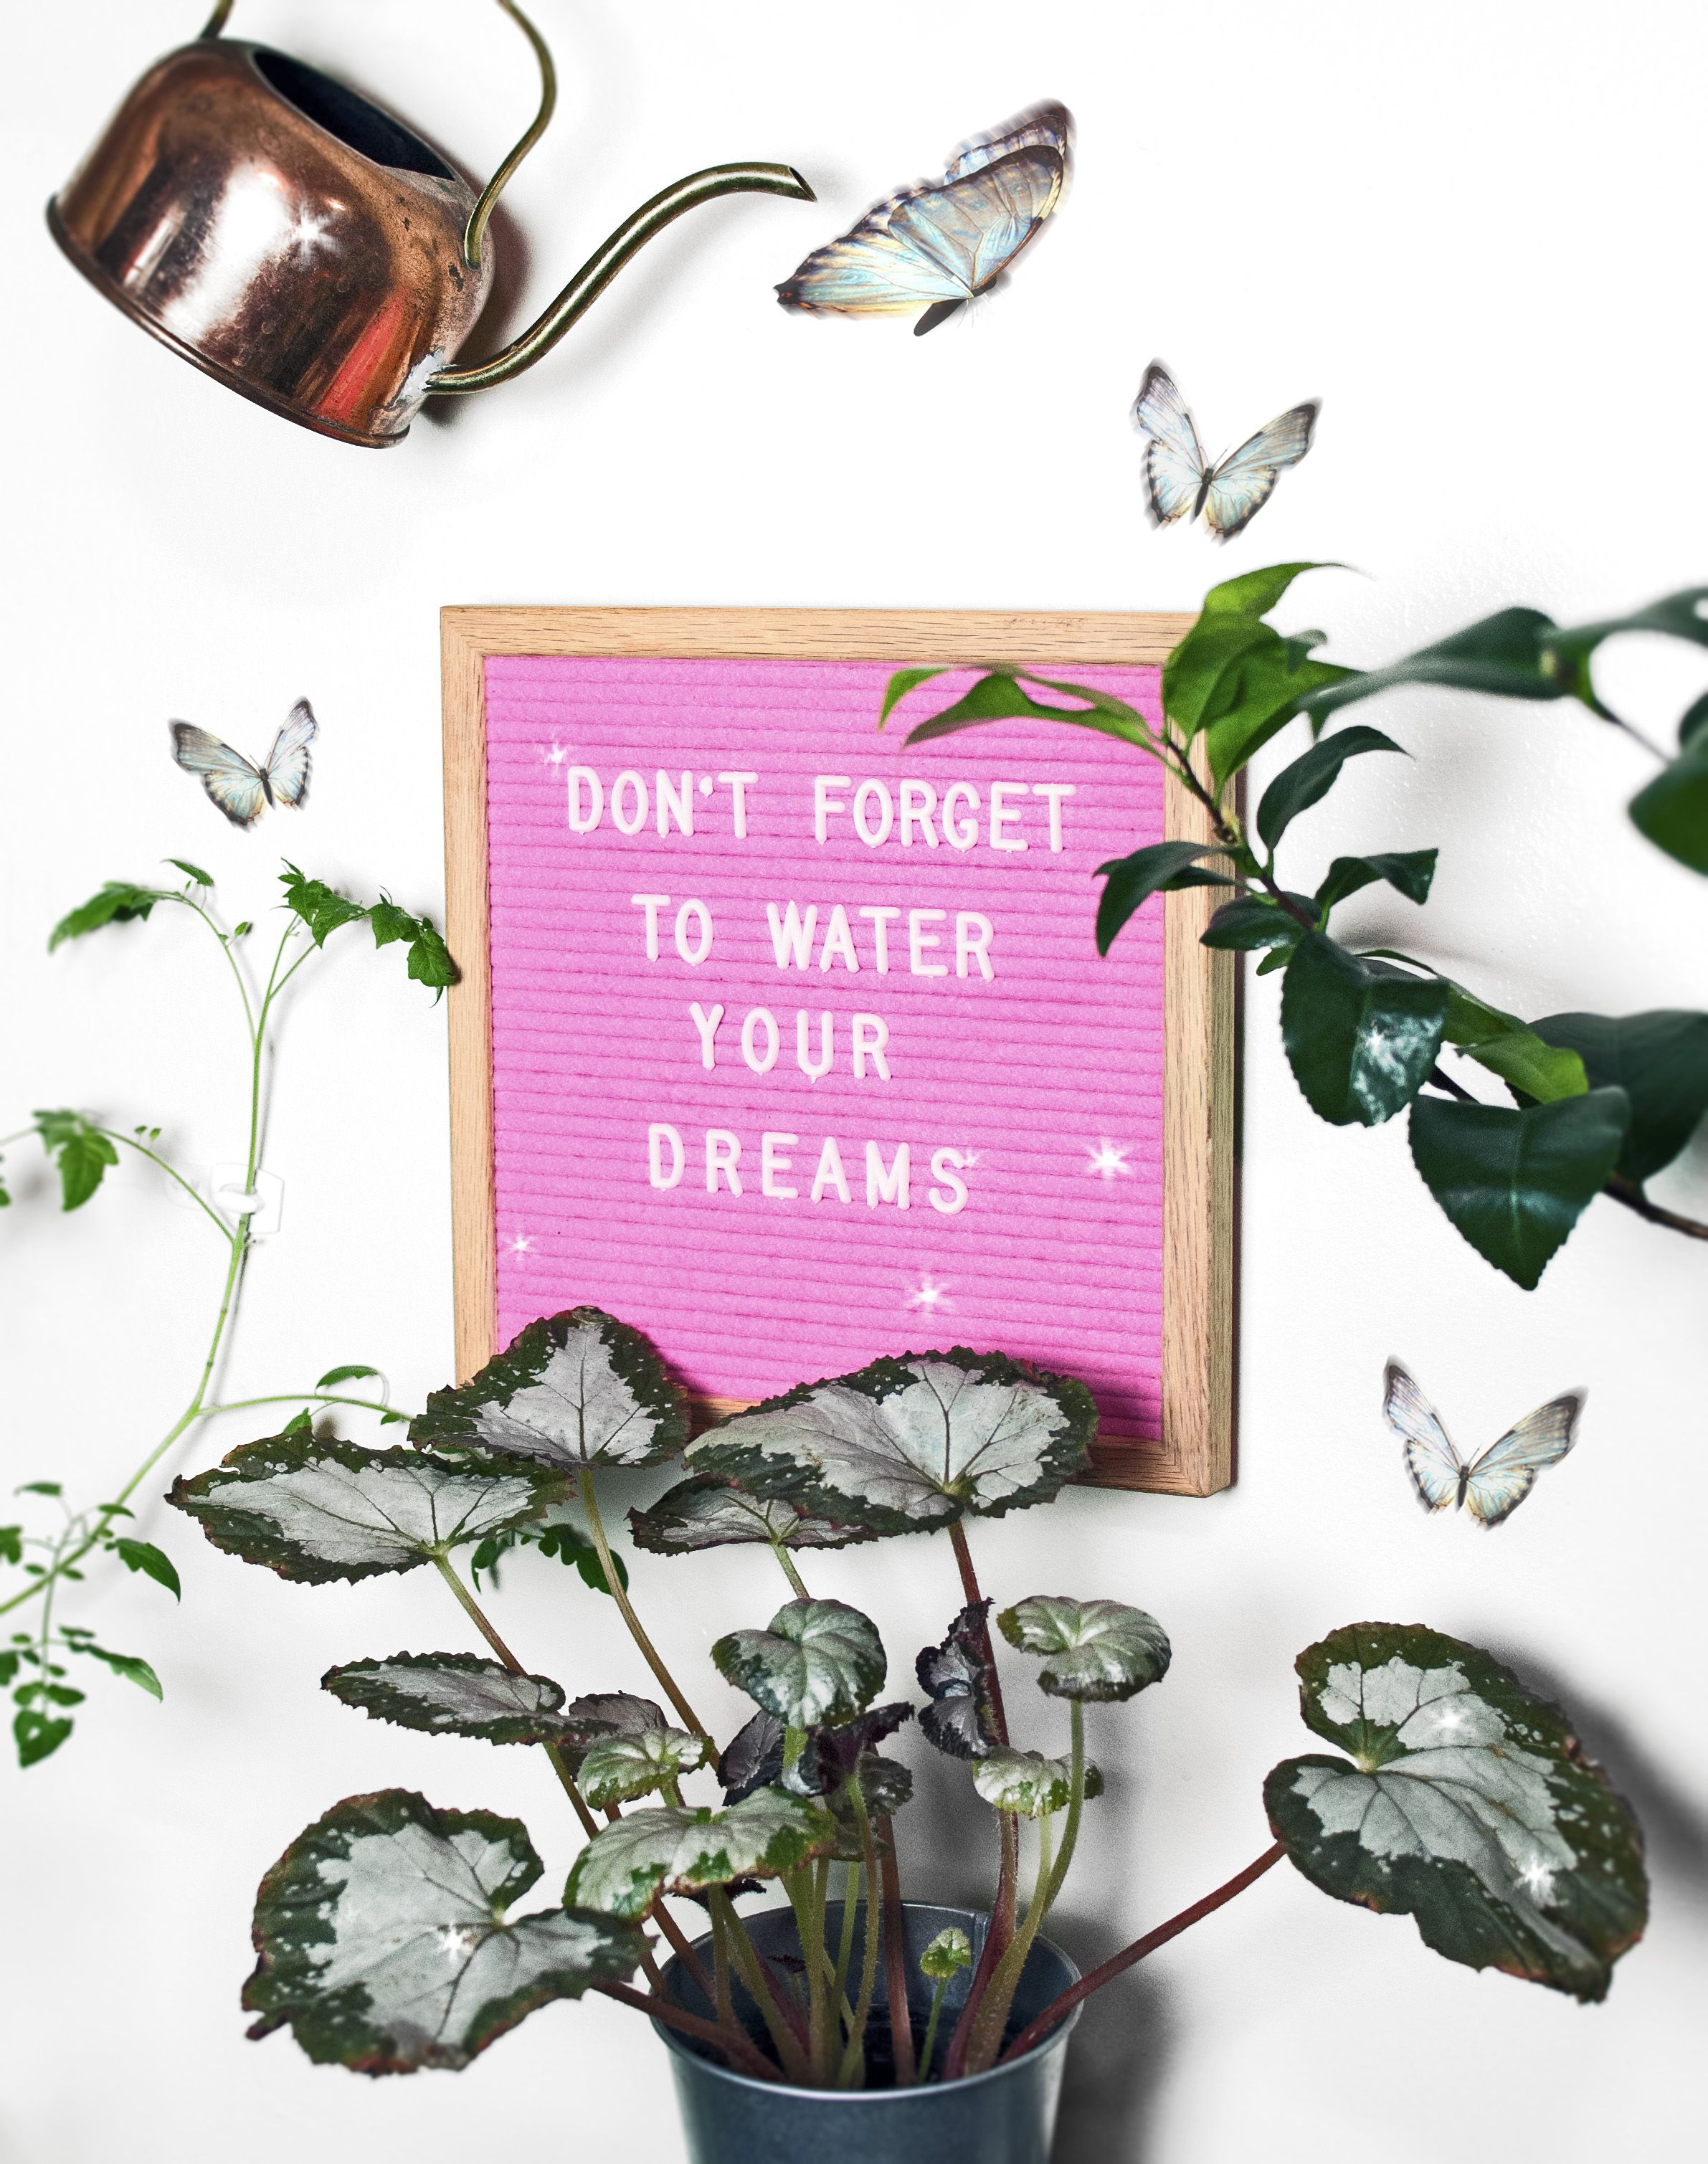 fairytale slavery letterboard quote indoor plants plants